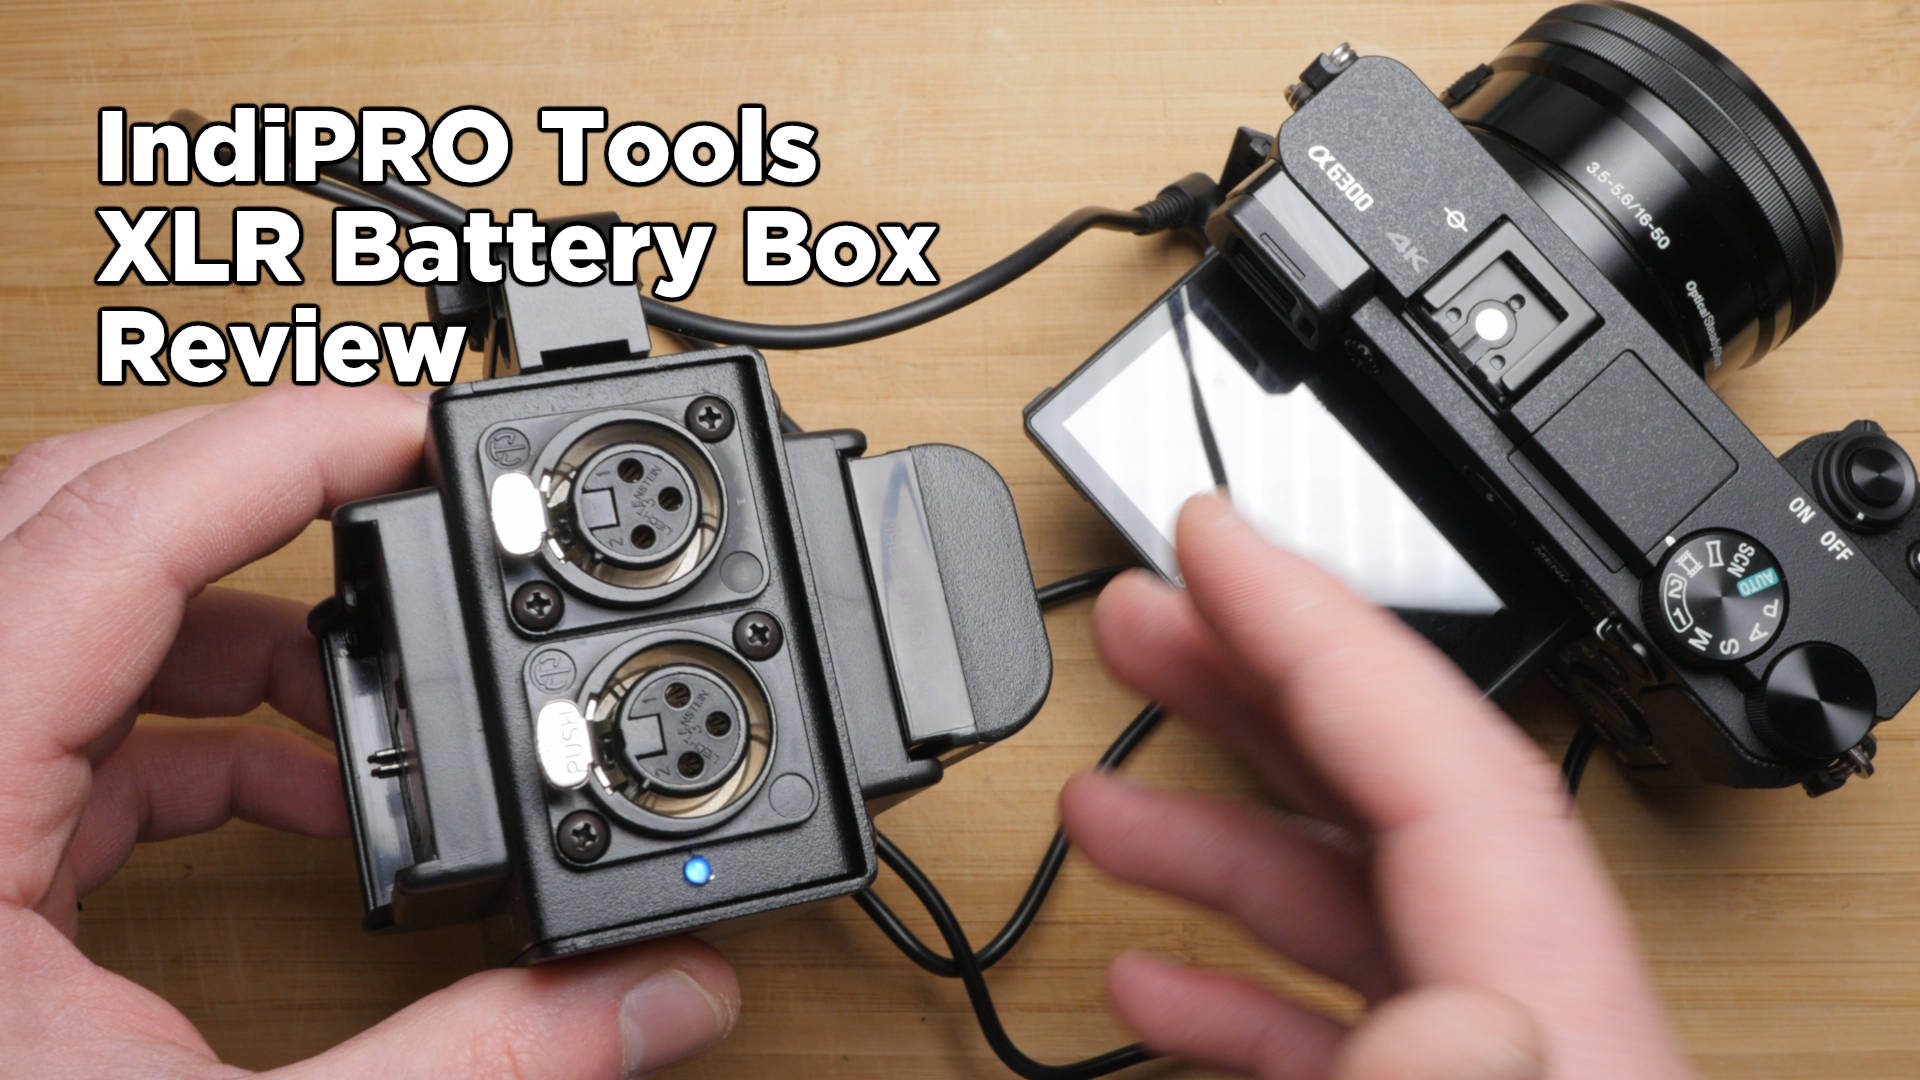 IndiPro Tools XLR Battery Box Review